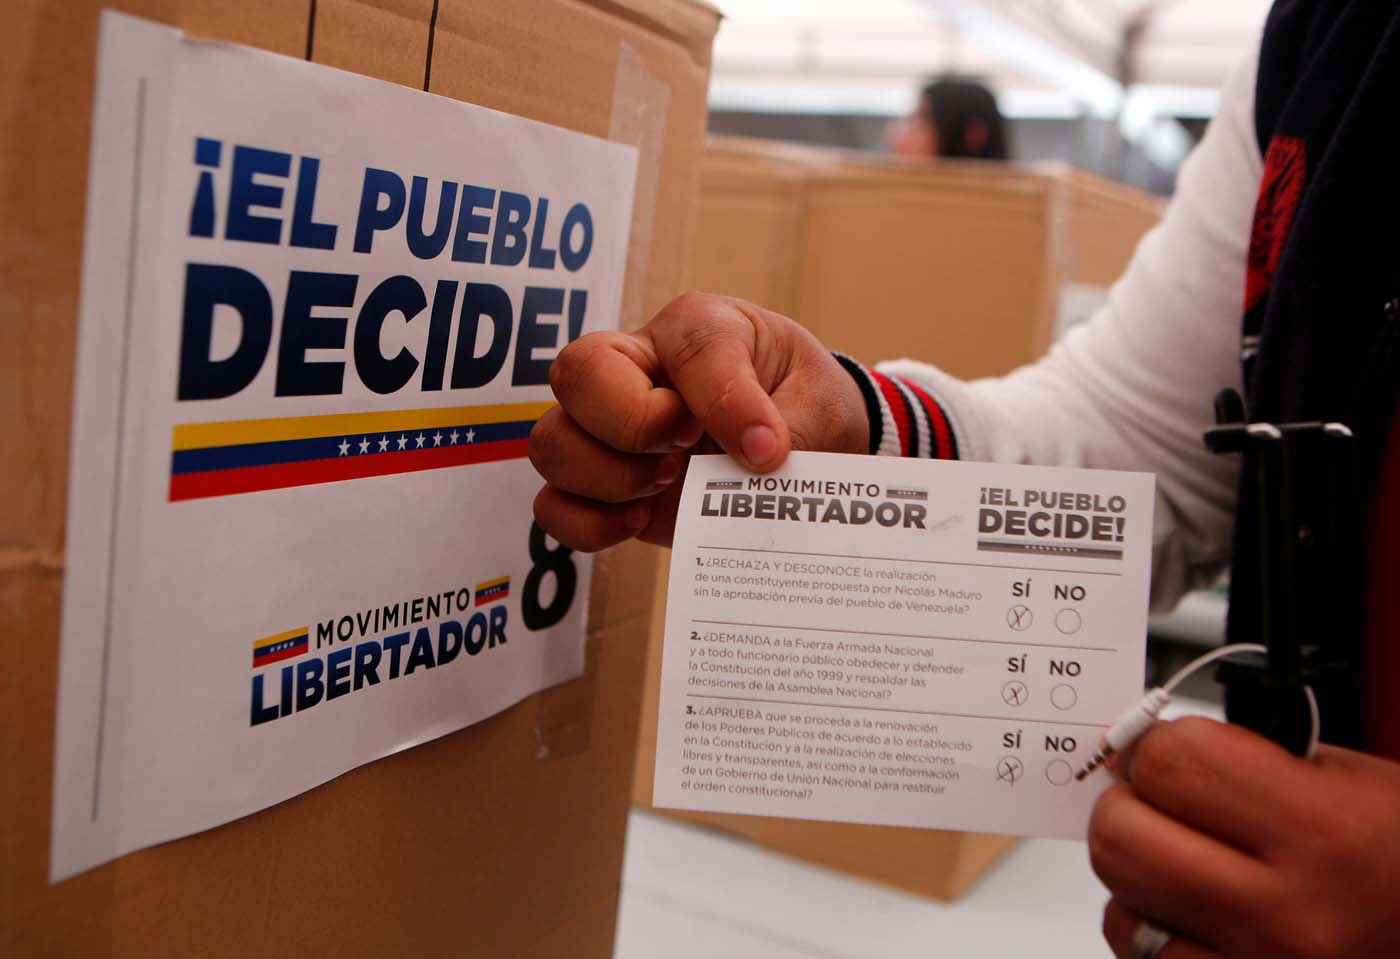 A man casts his vote during an unofficial plebiscite against President Nicolas Maduro's government, in Bogota, Colombia July 16, 2017. REUTERS/Jaime Saldarriaga